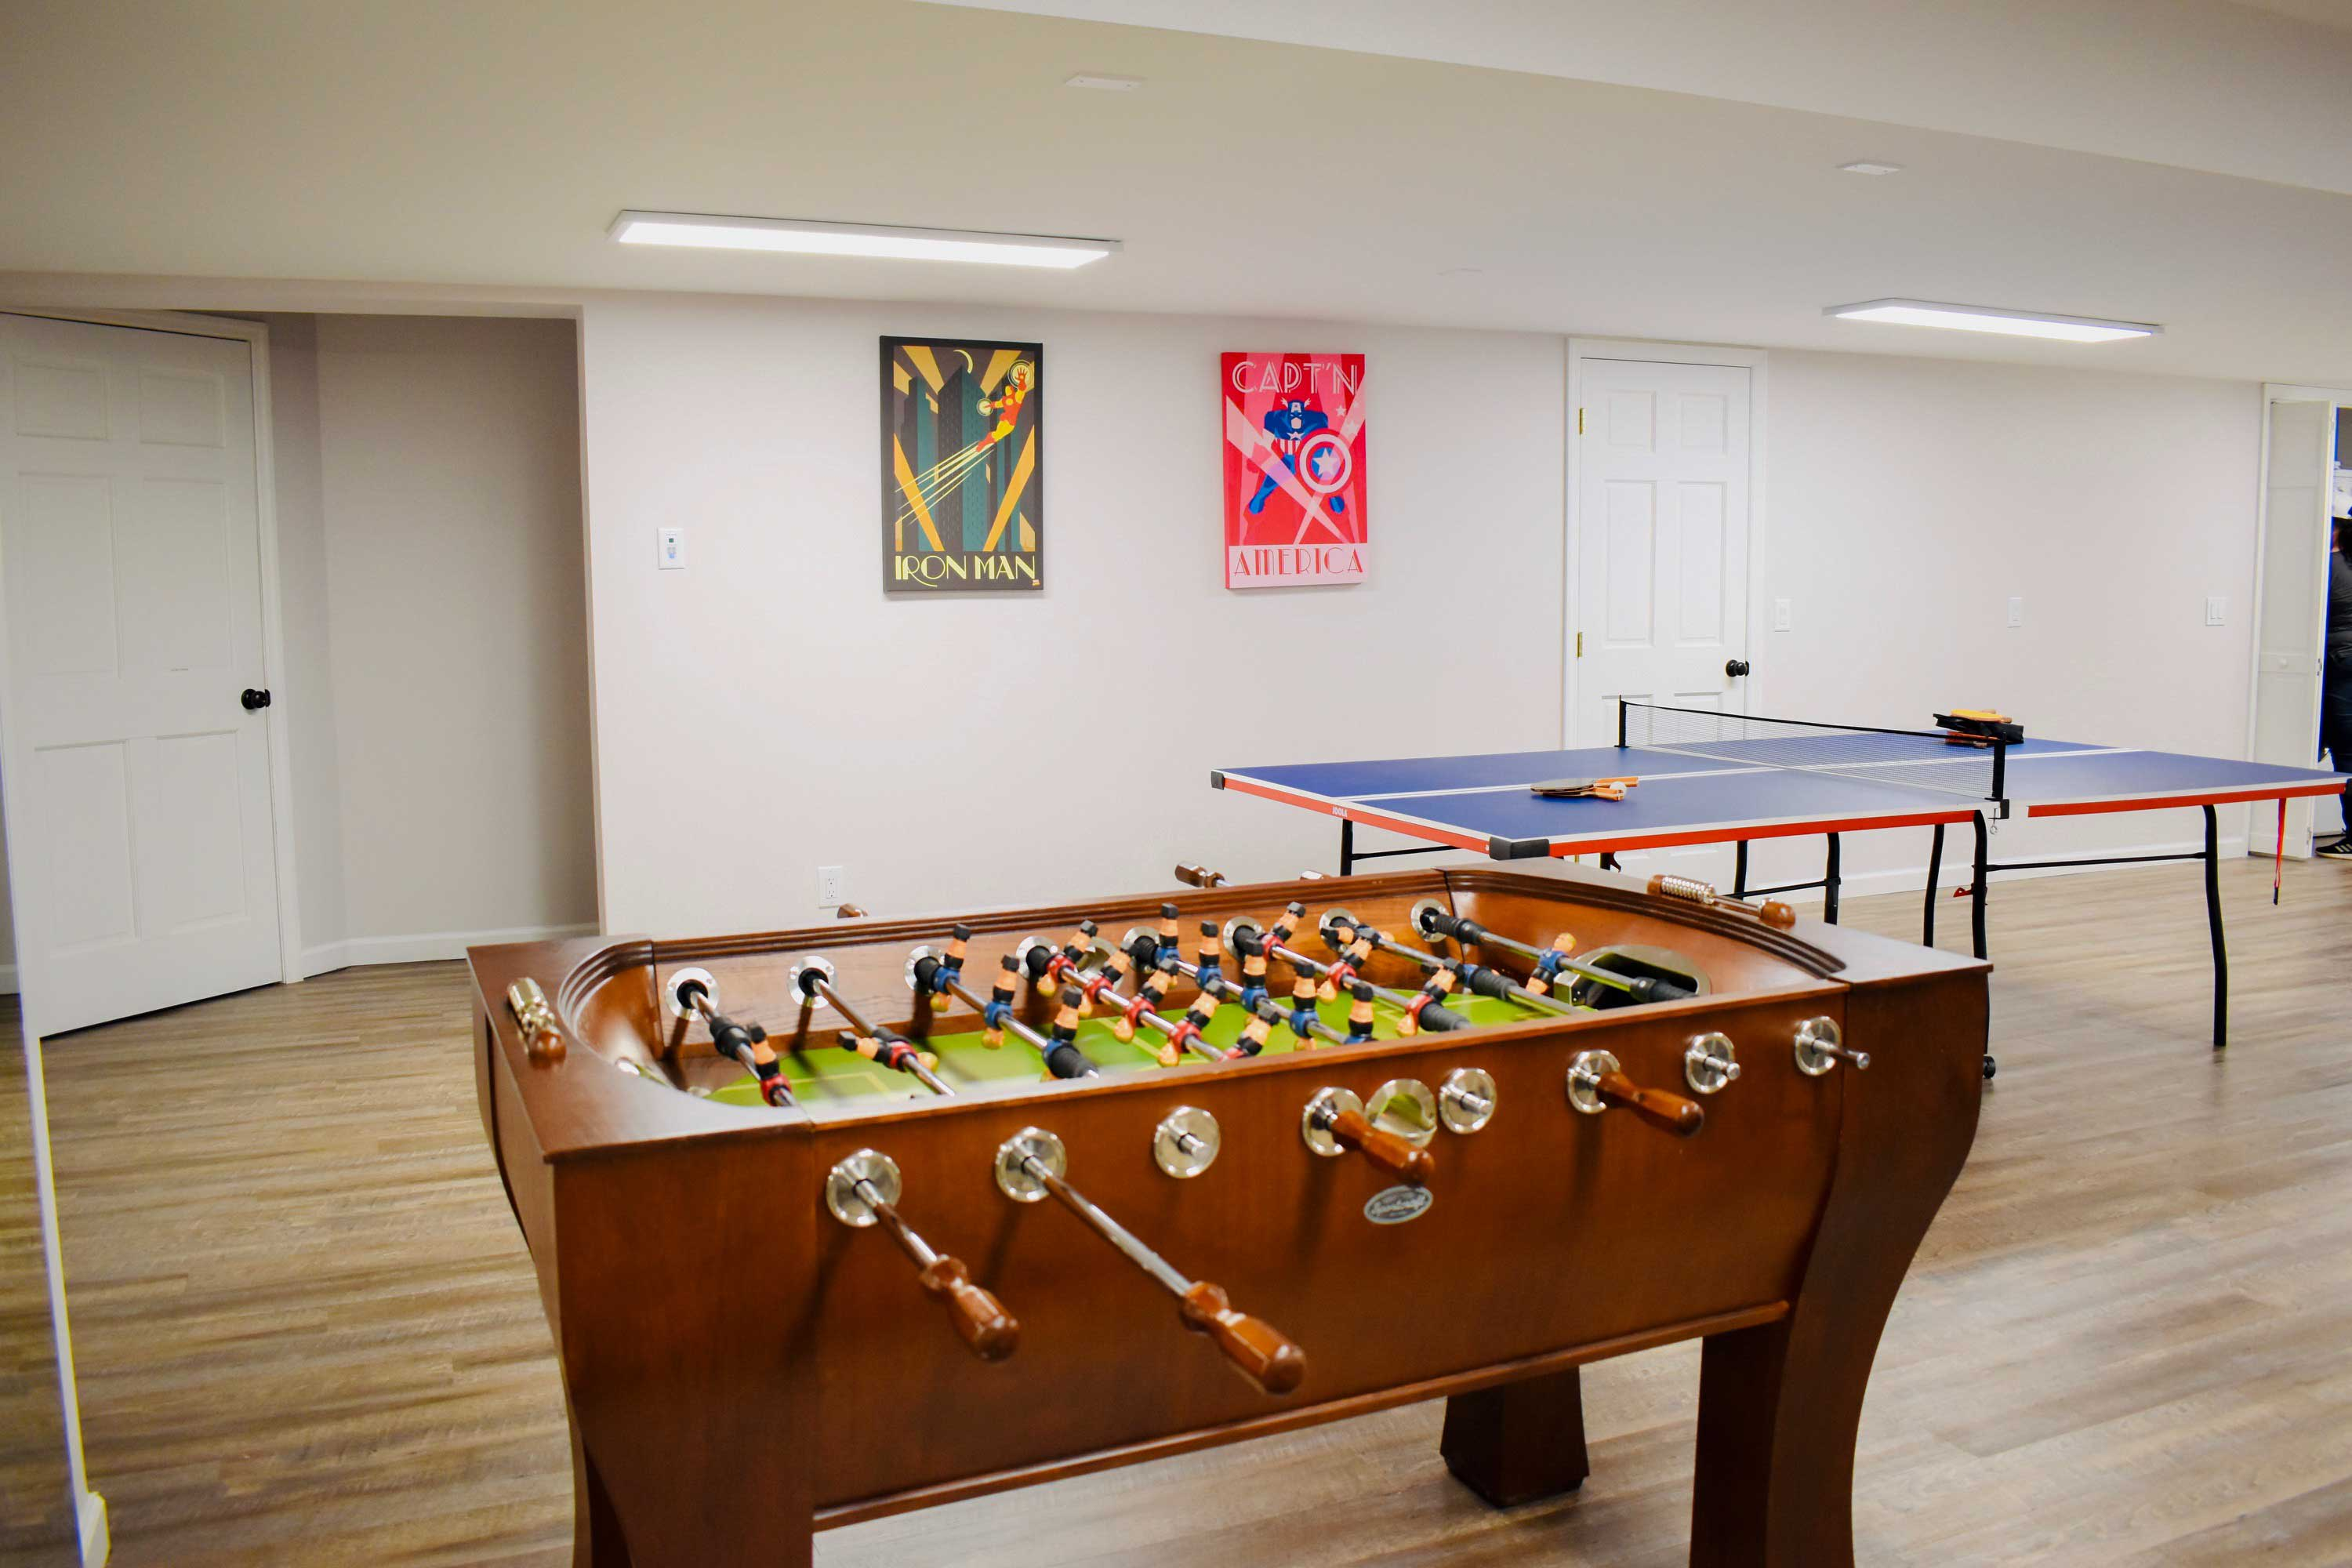 Hang around after your workout for a heart-pumping game of ping pong & foosball!